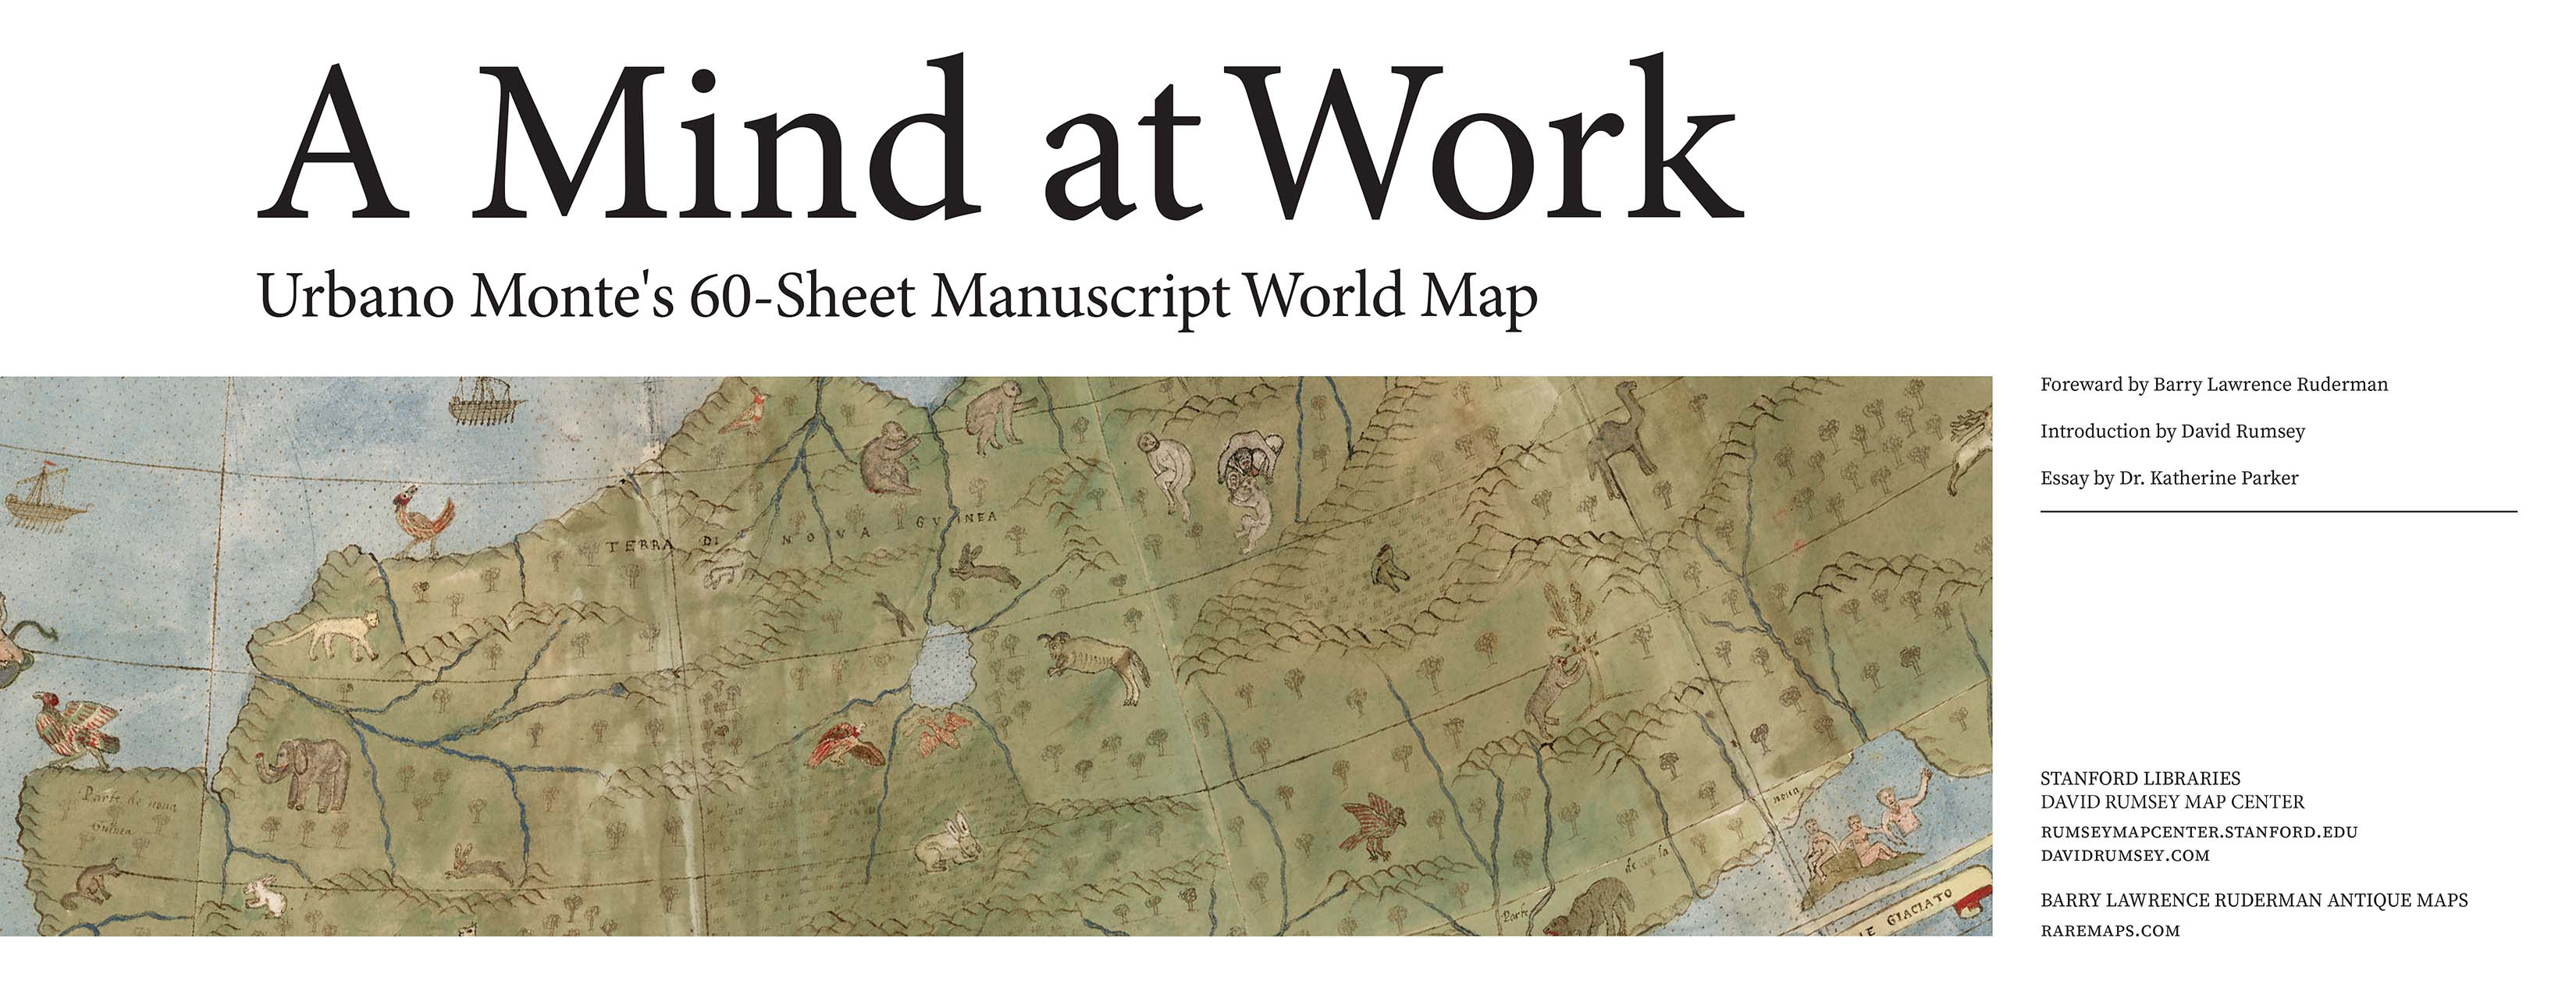 David rumsey historical map collection largest early world map read pdf a mind at work urbano montes 60 sheet manuscript world map forward by barry lawrence ruderman introduction by david rumsey gumiabroncs Choice Image